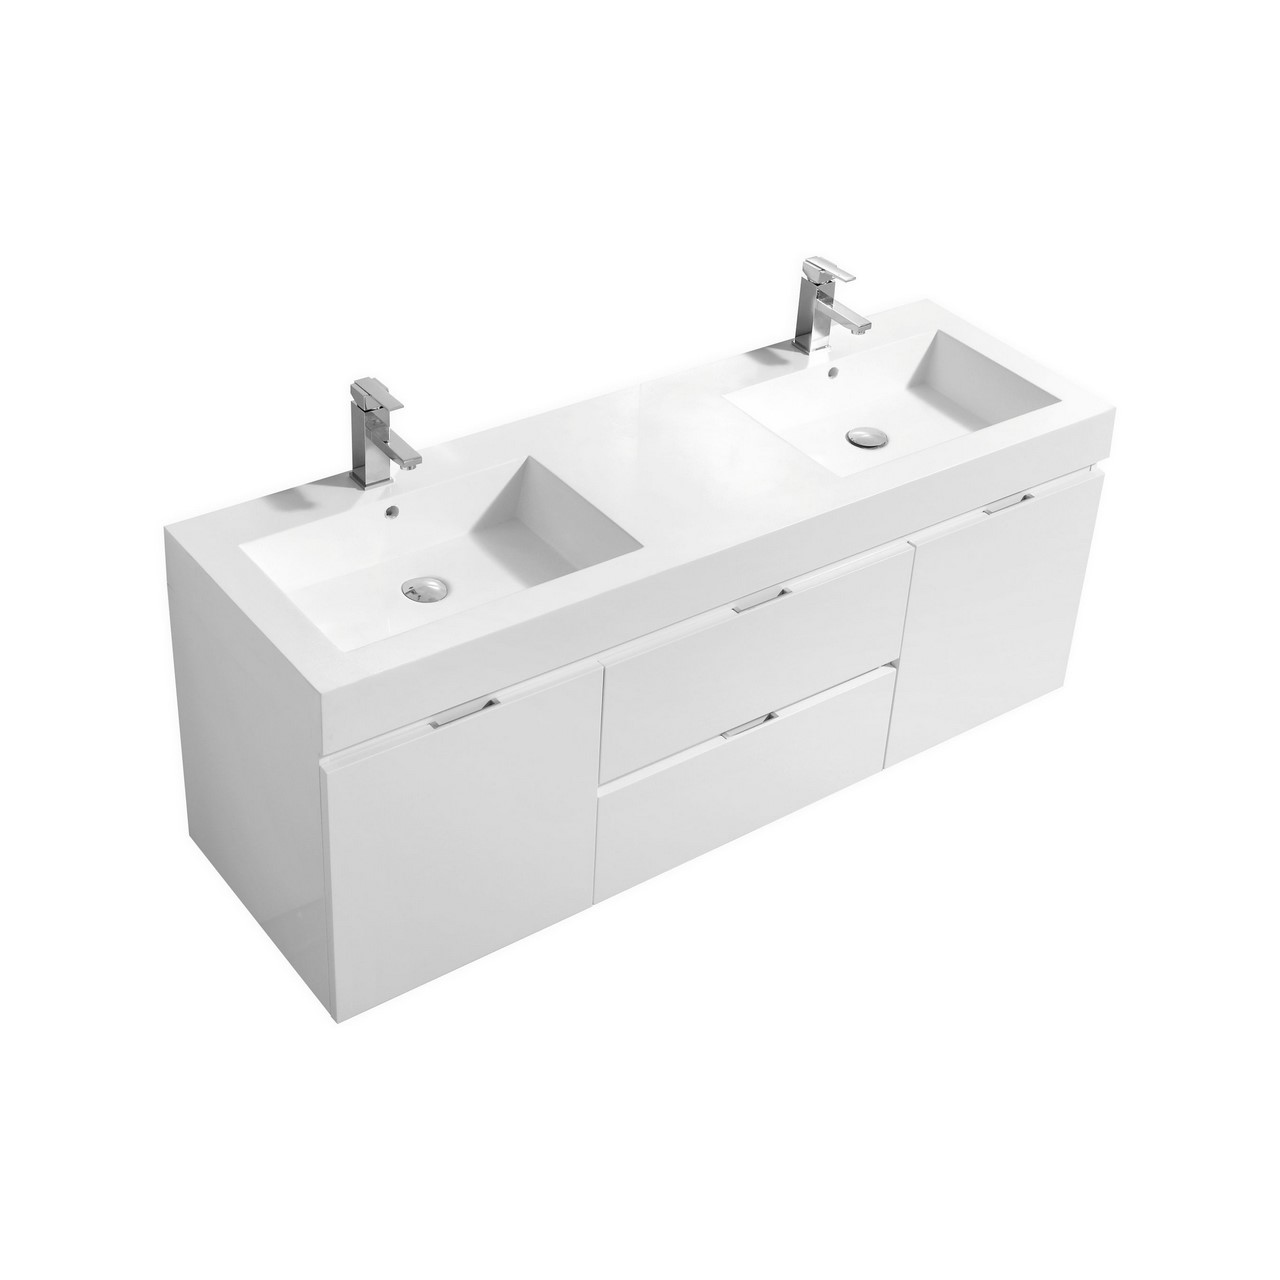 Bliss 60 high gloss white wall mount double sink vanity - Modern bathroom vanity double sink ...